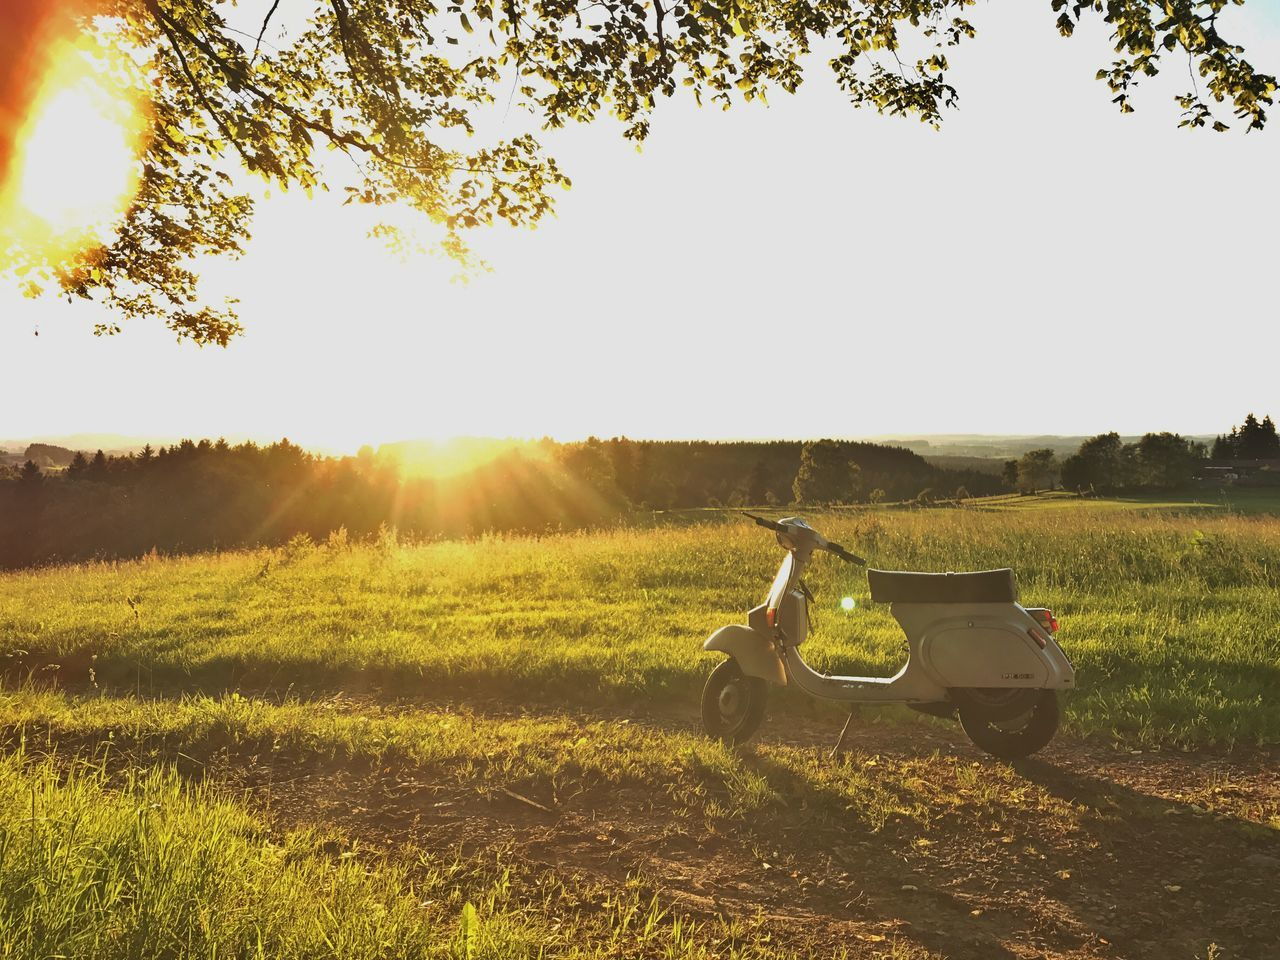 Sunlight Tree Field Grass Sport One Man Only Nature Bicycle Outdoors Golf Course One Person Leisure Activity Day Adult Only Men Golf Adults Only Men Sunset People Vespa